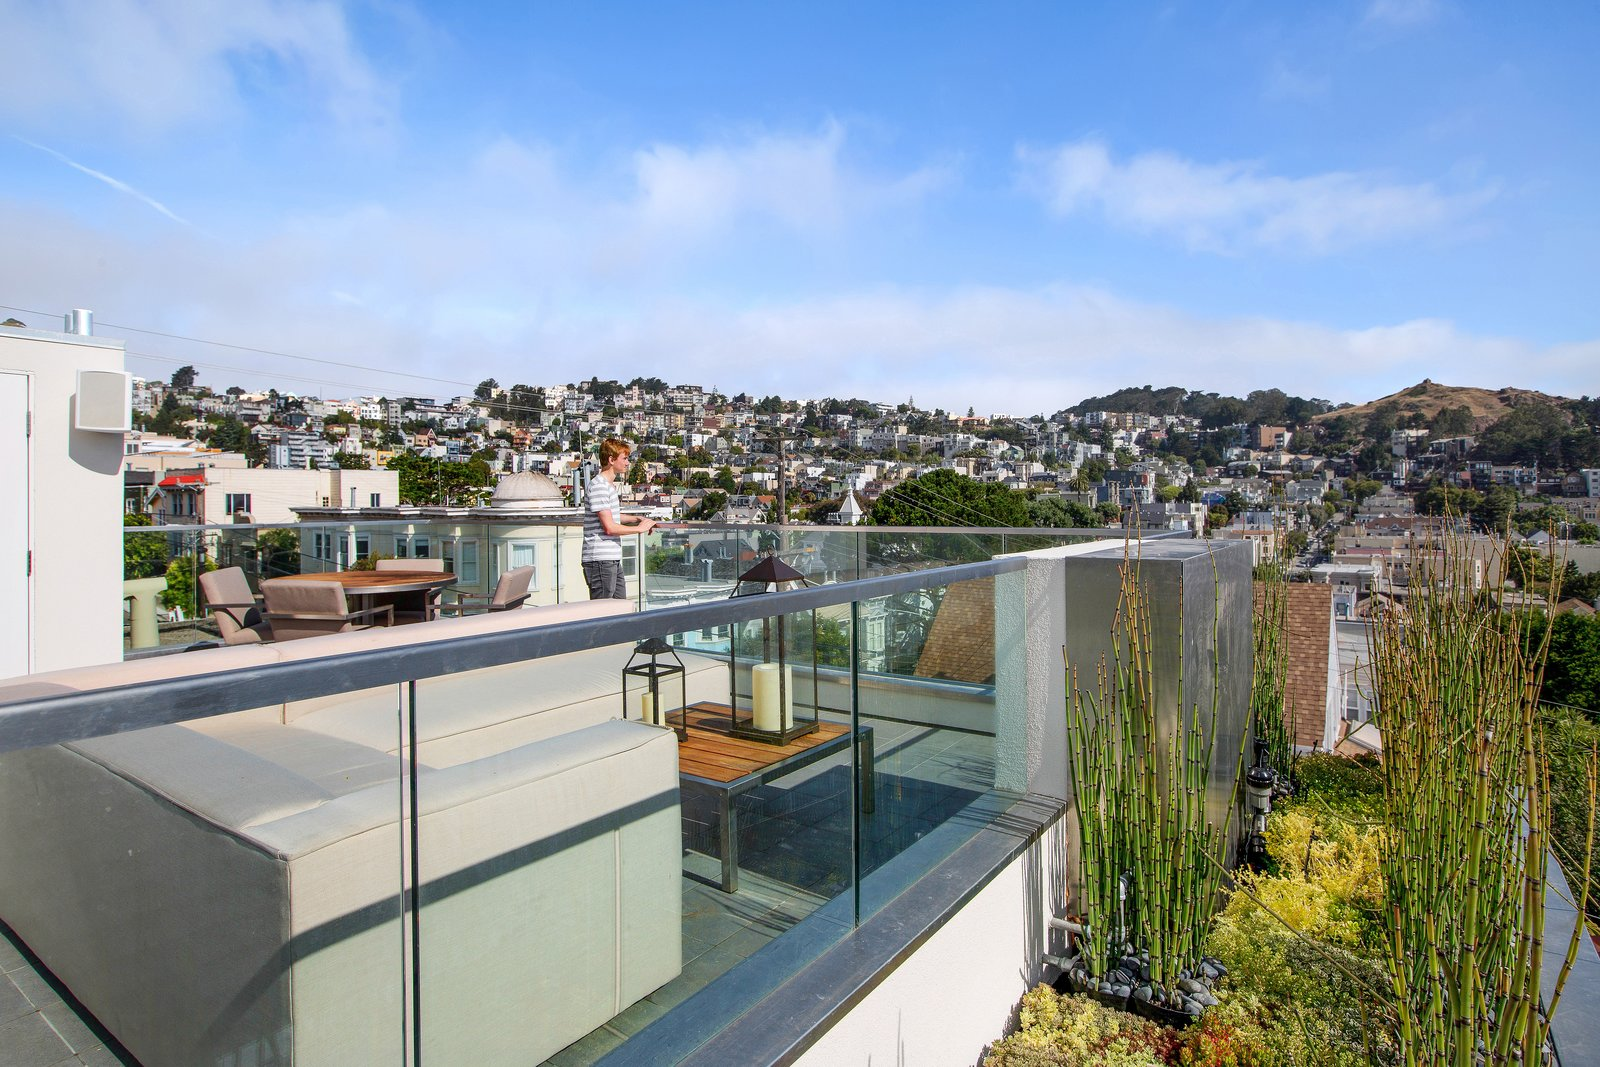 Tagged: Outdoor, Rooftop, Large Patio, Porch, Deck, and Tile Patio, Porch, Deck.  LEED Platinum House in SF by DNM Architecture